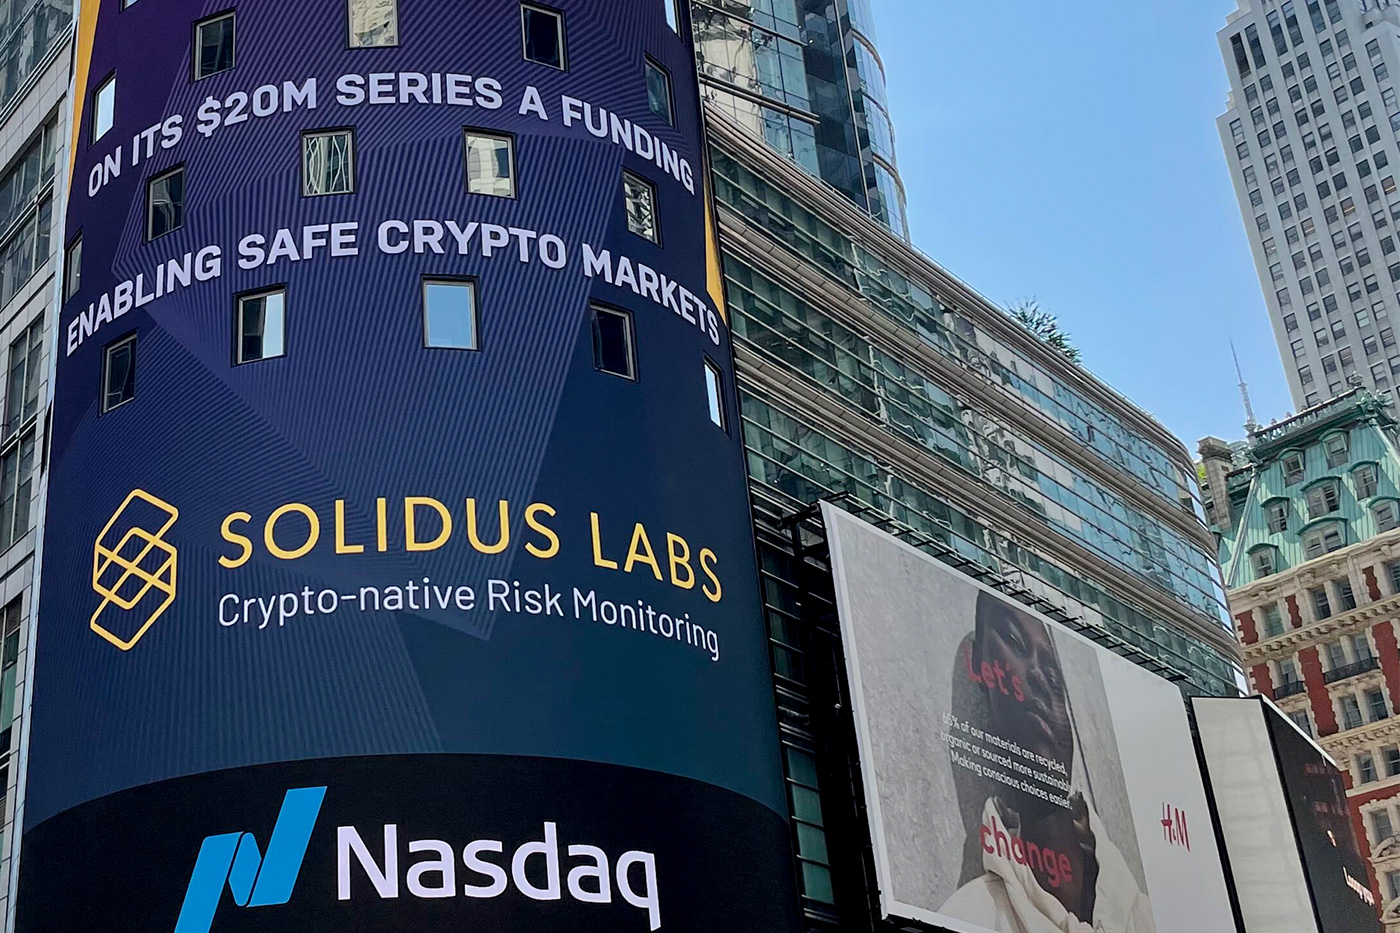 Solidus Labs Announces $20 Million A Round, to Enable Safe Crypto Markets and Transform Financial Risk Monitoring